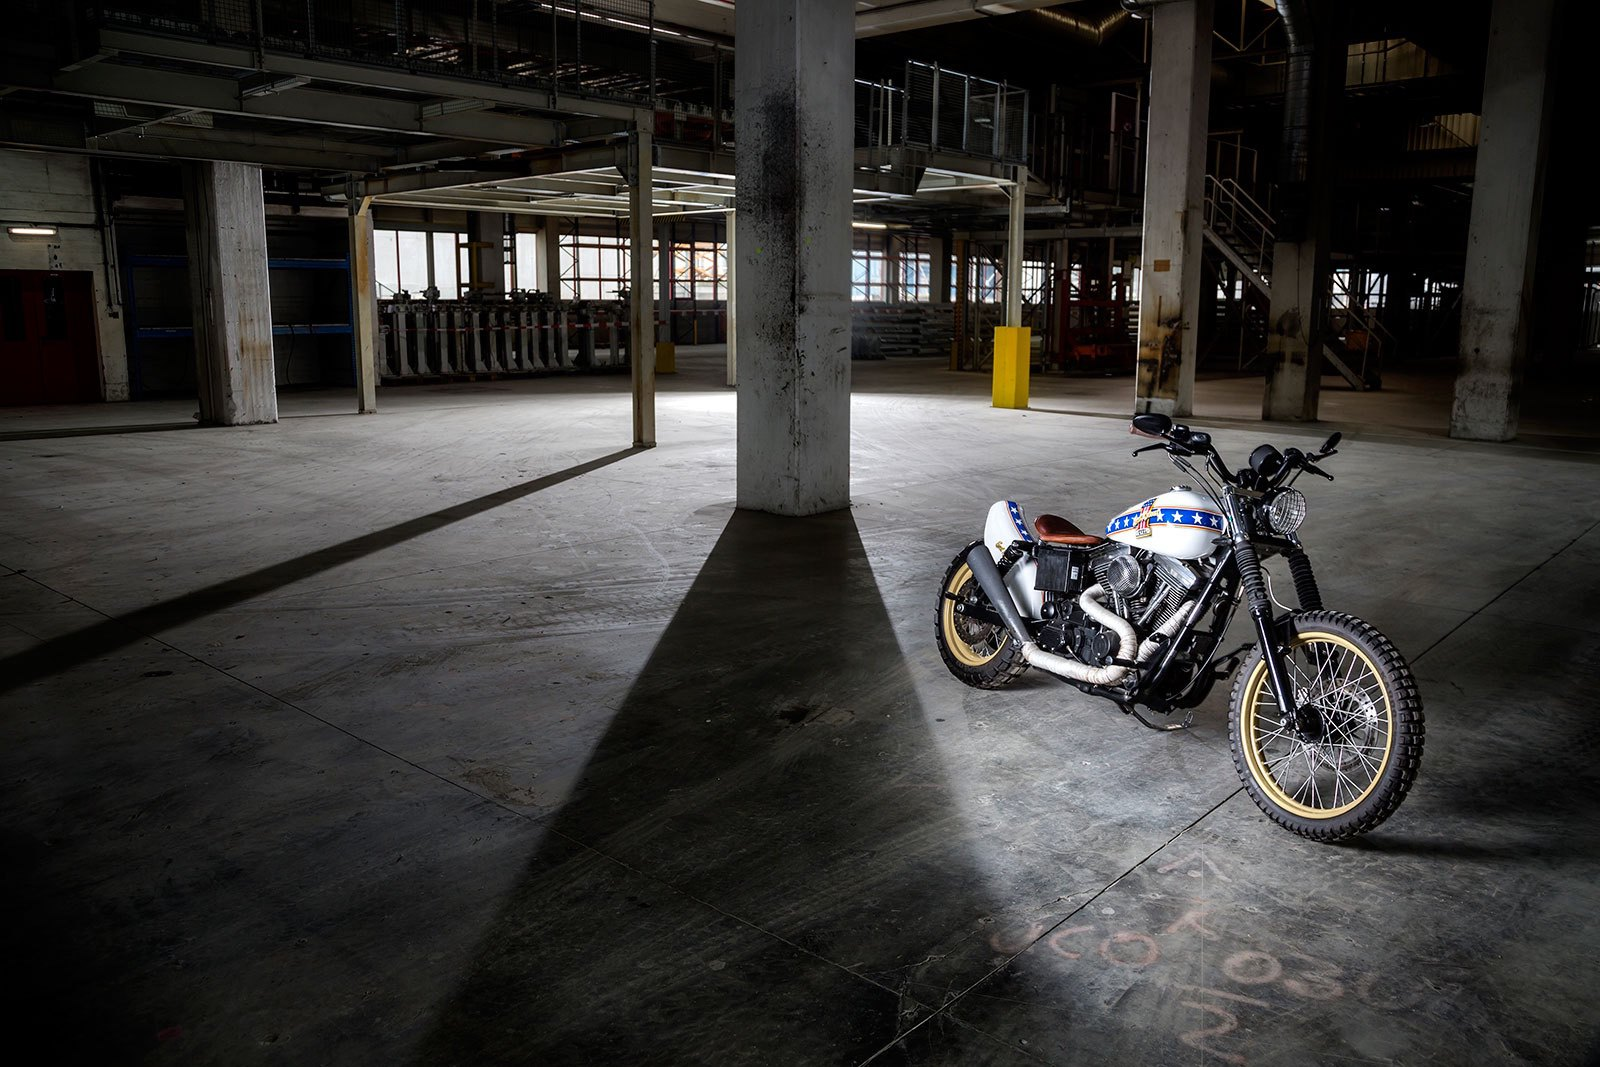 """Evel Knievel S Harley Davidson Xl1000 Up For Auction: Harley Davidson """"Evel Knievel"""""""